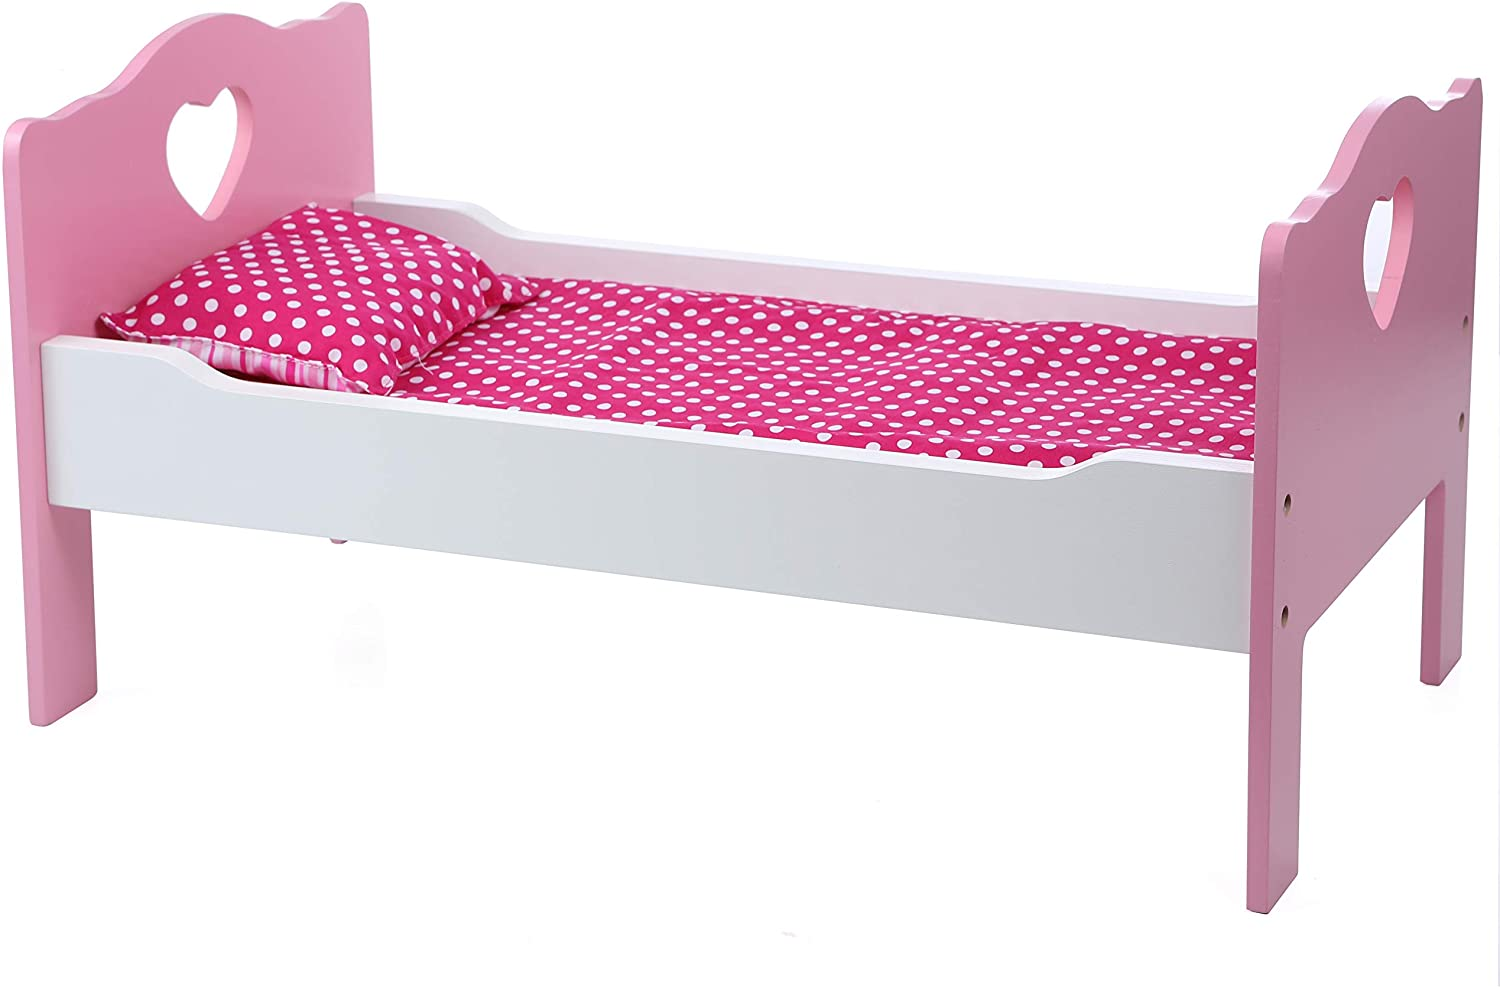 Beverly Hills Doll Accessories Bed and Bedding Wooden Furniture and Linen Accessories, Fits 18 Inch American Girl Doll. Made with Extra Durable Solid Wood